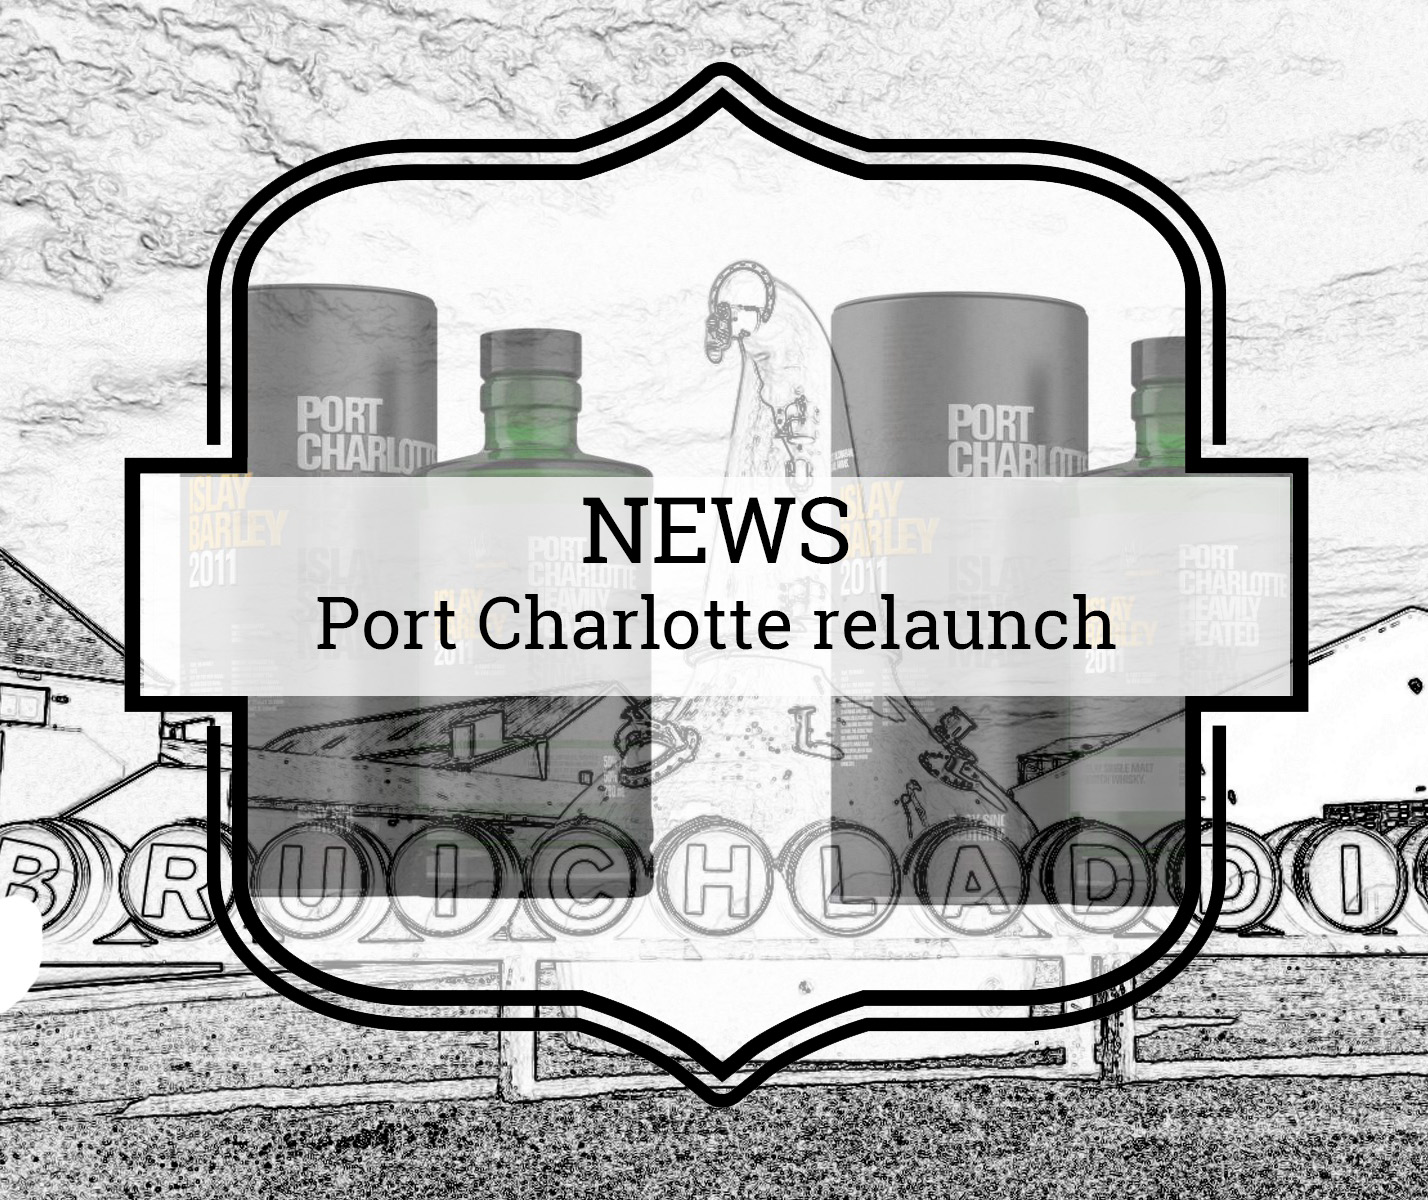 hight resolution of bruichladdich gives its port charlotte brand a new look